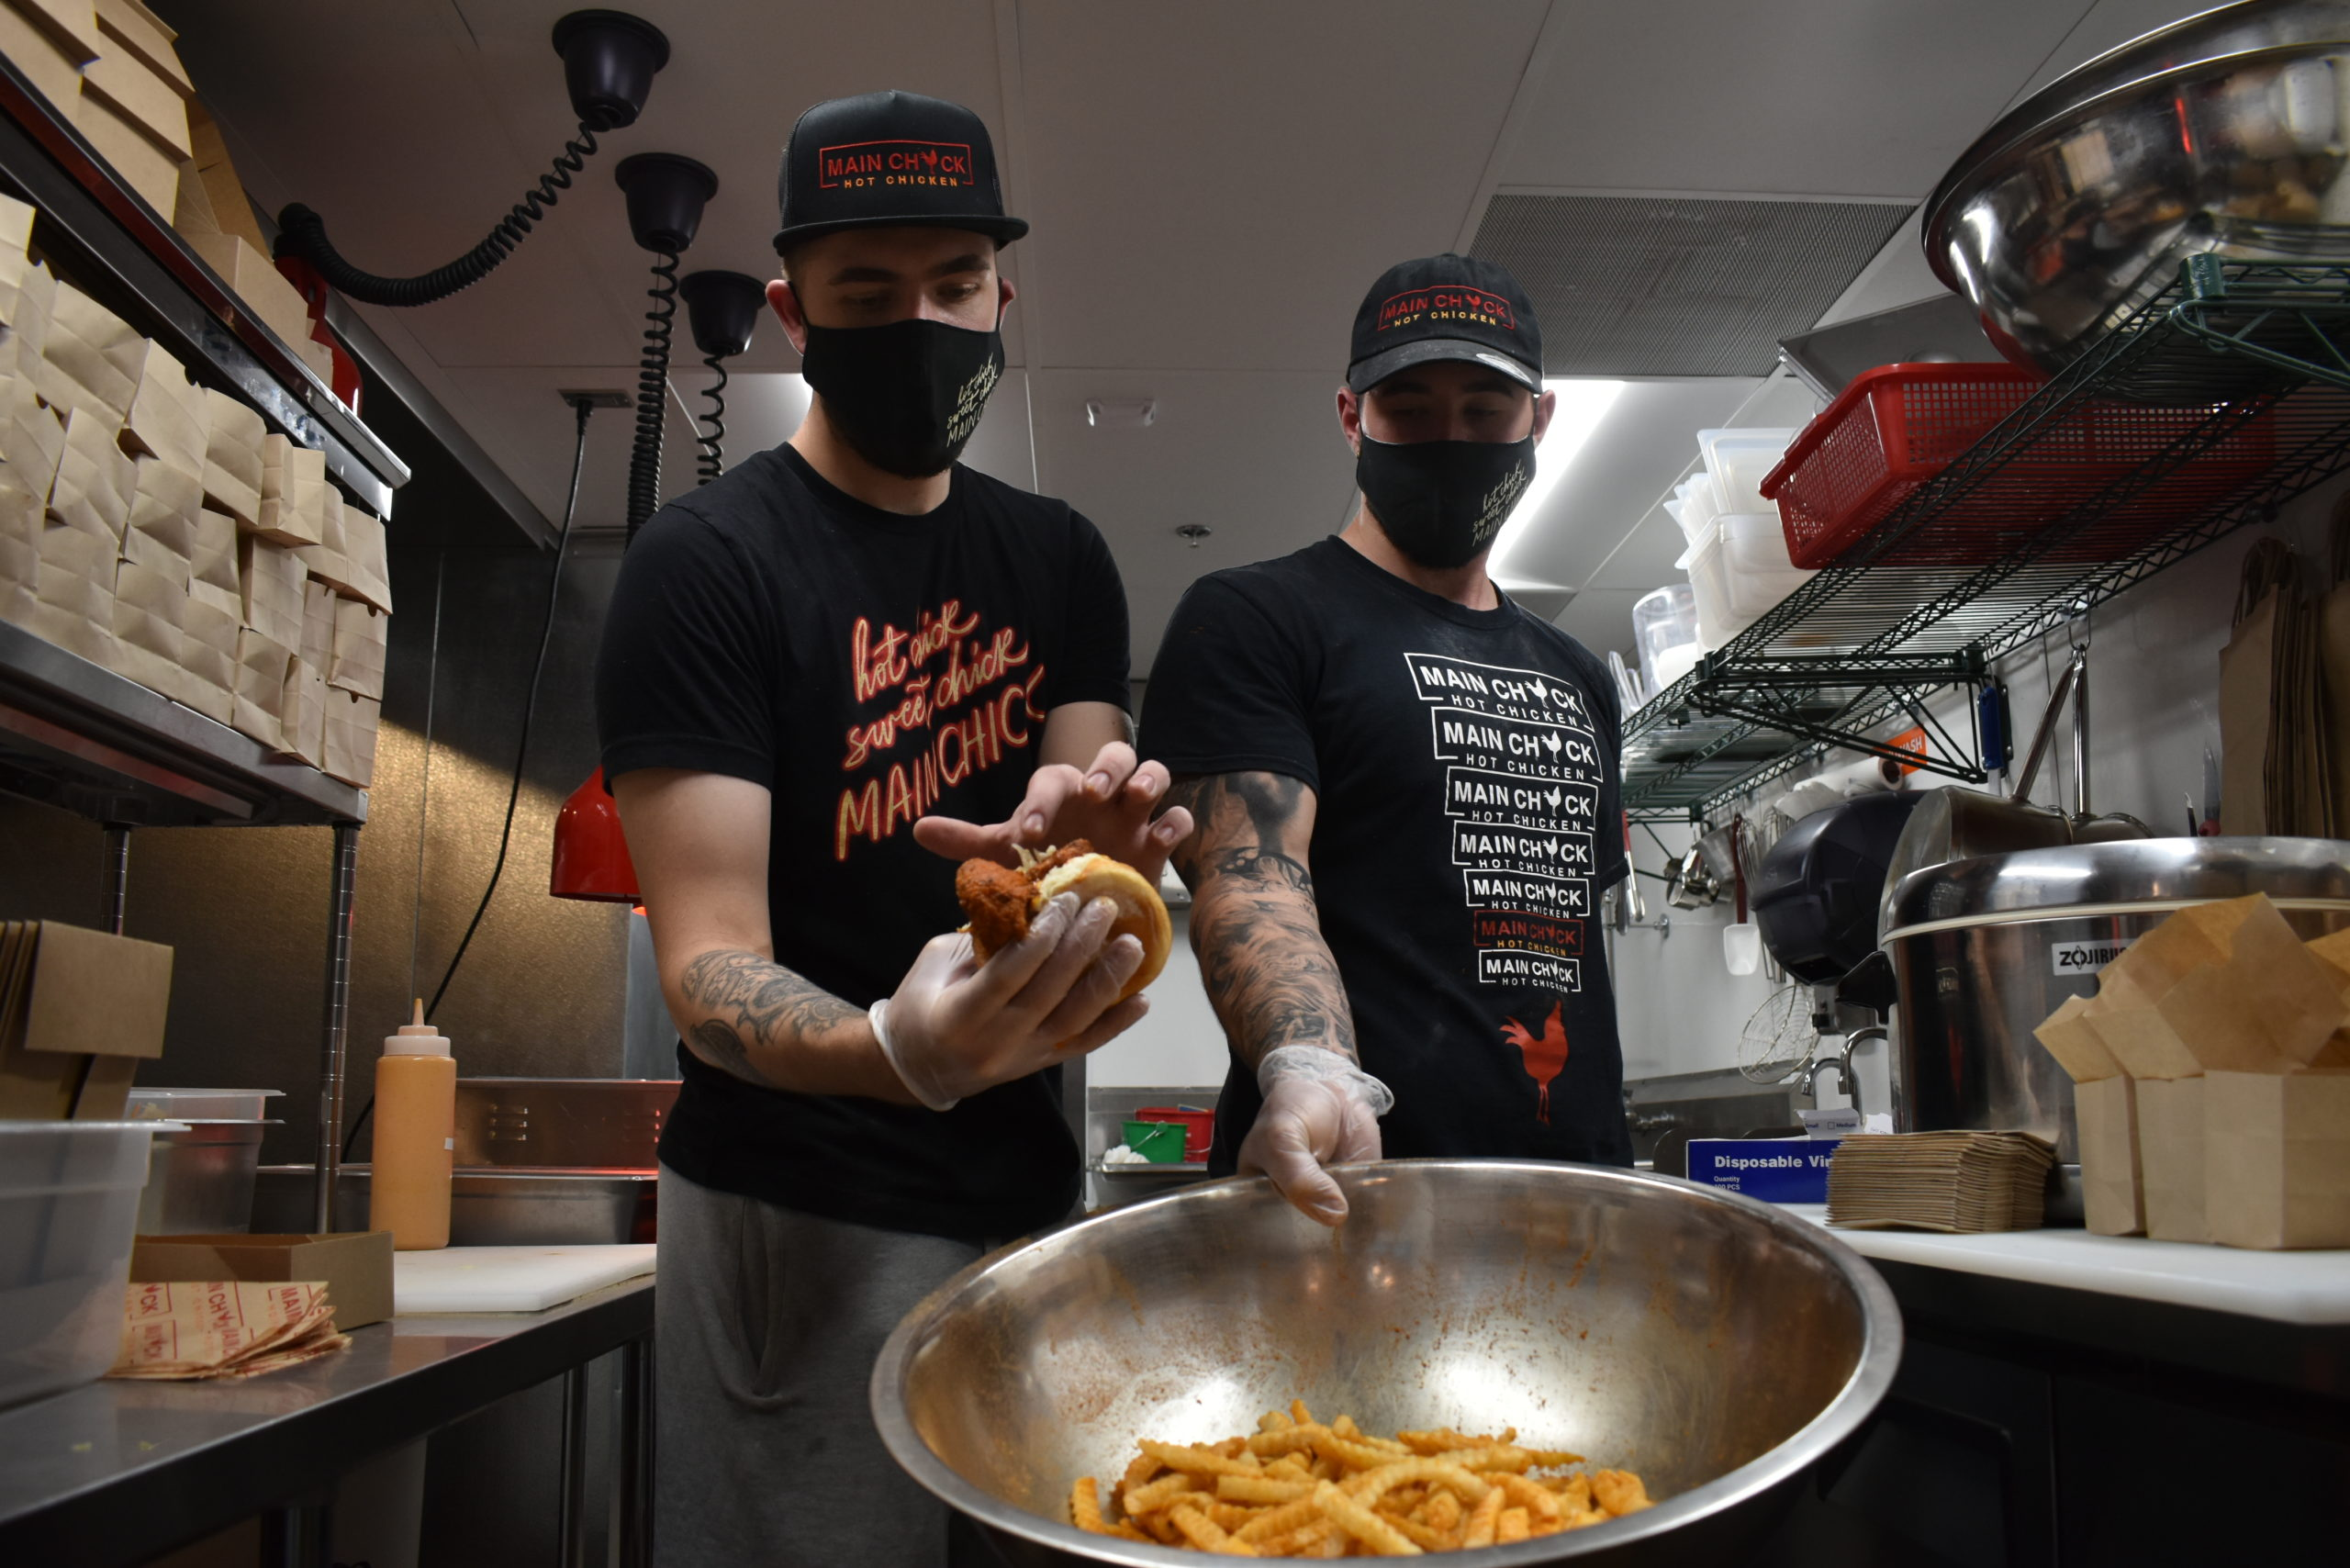 Asian fusion, fried chicken restaurants celebrate grand opening in North Long Beach • the Hi-lo